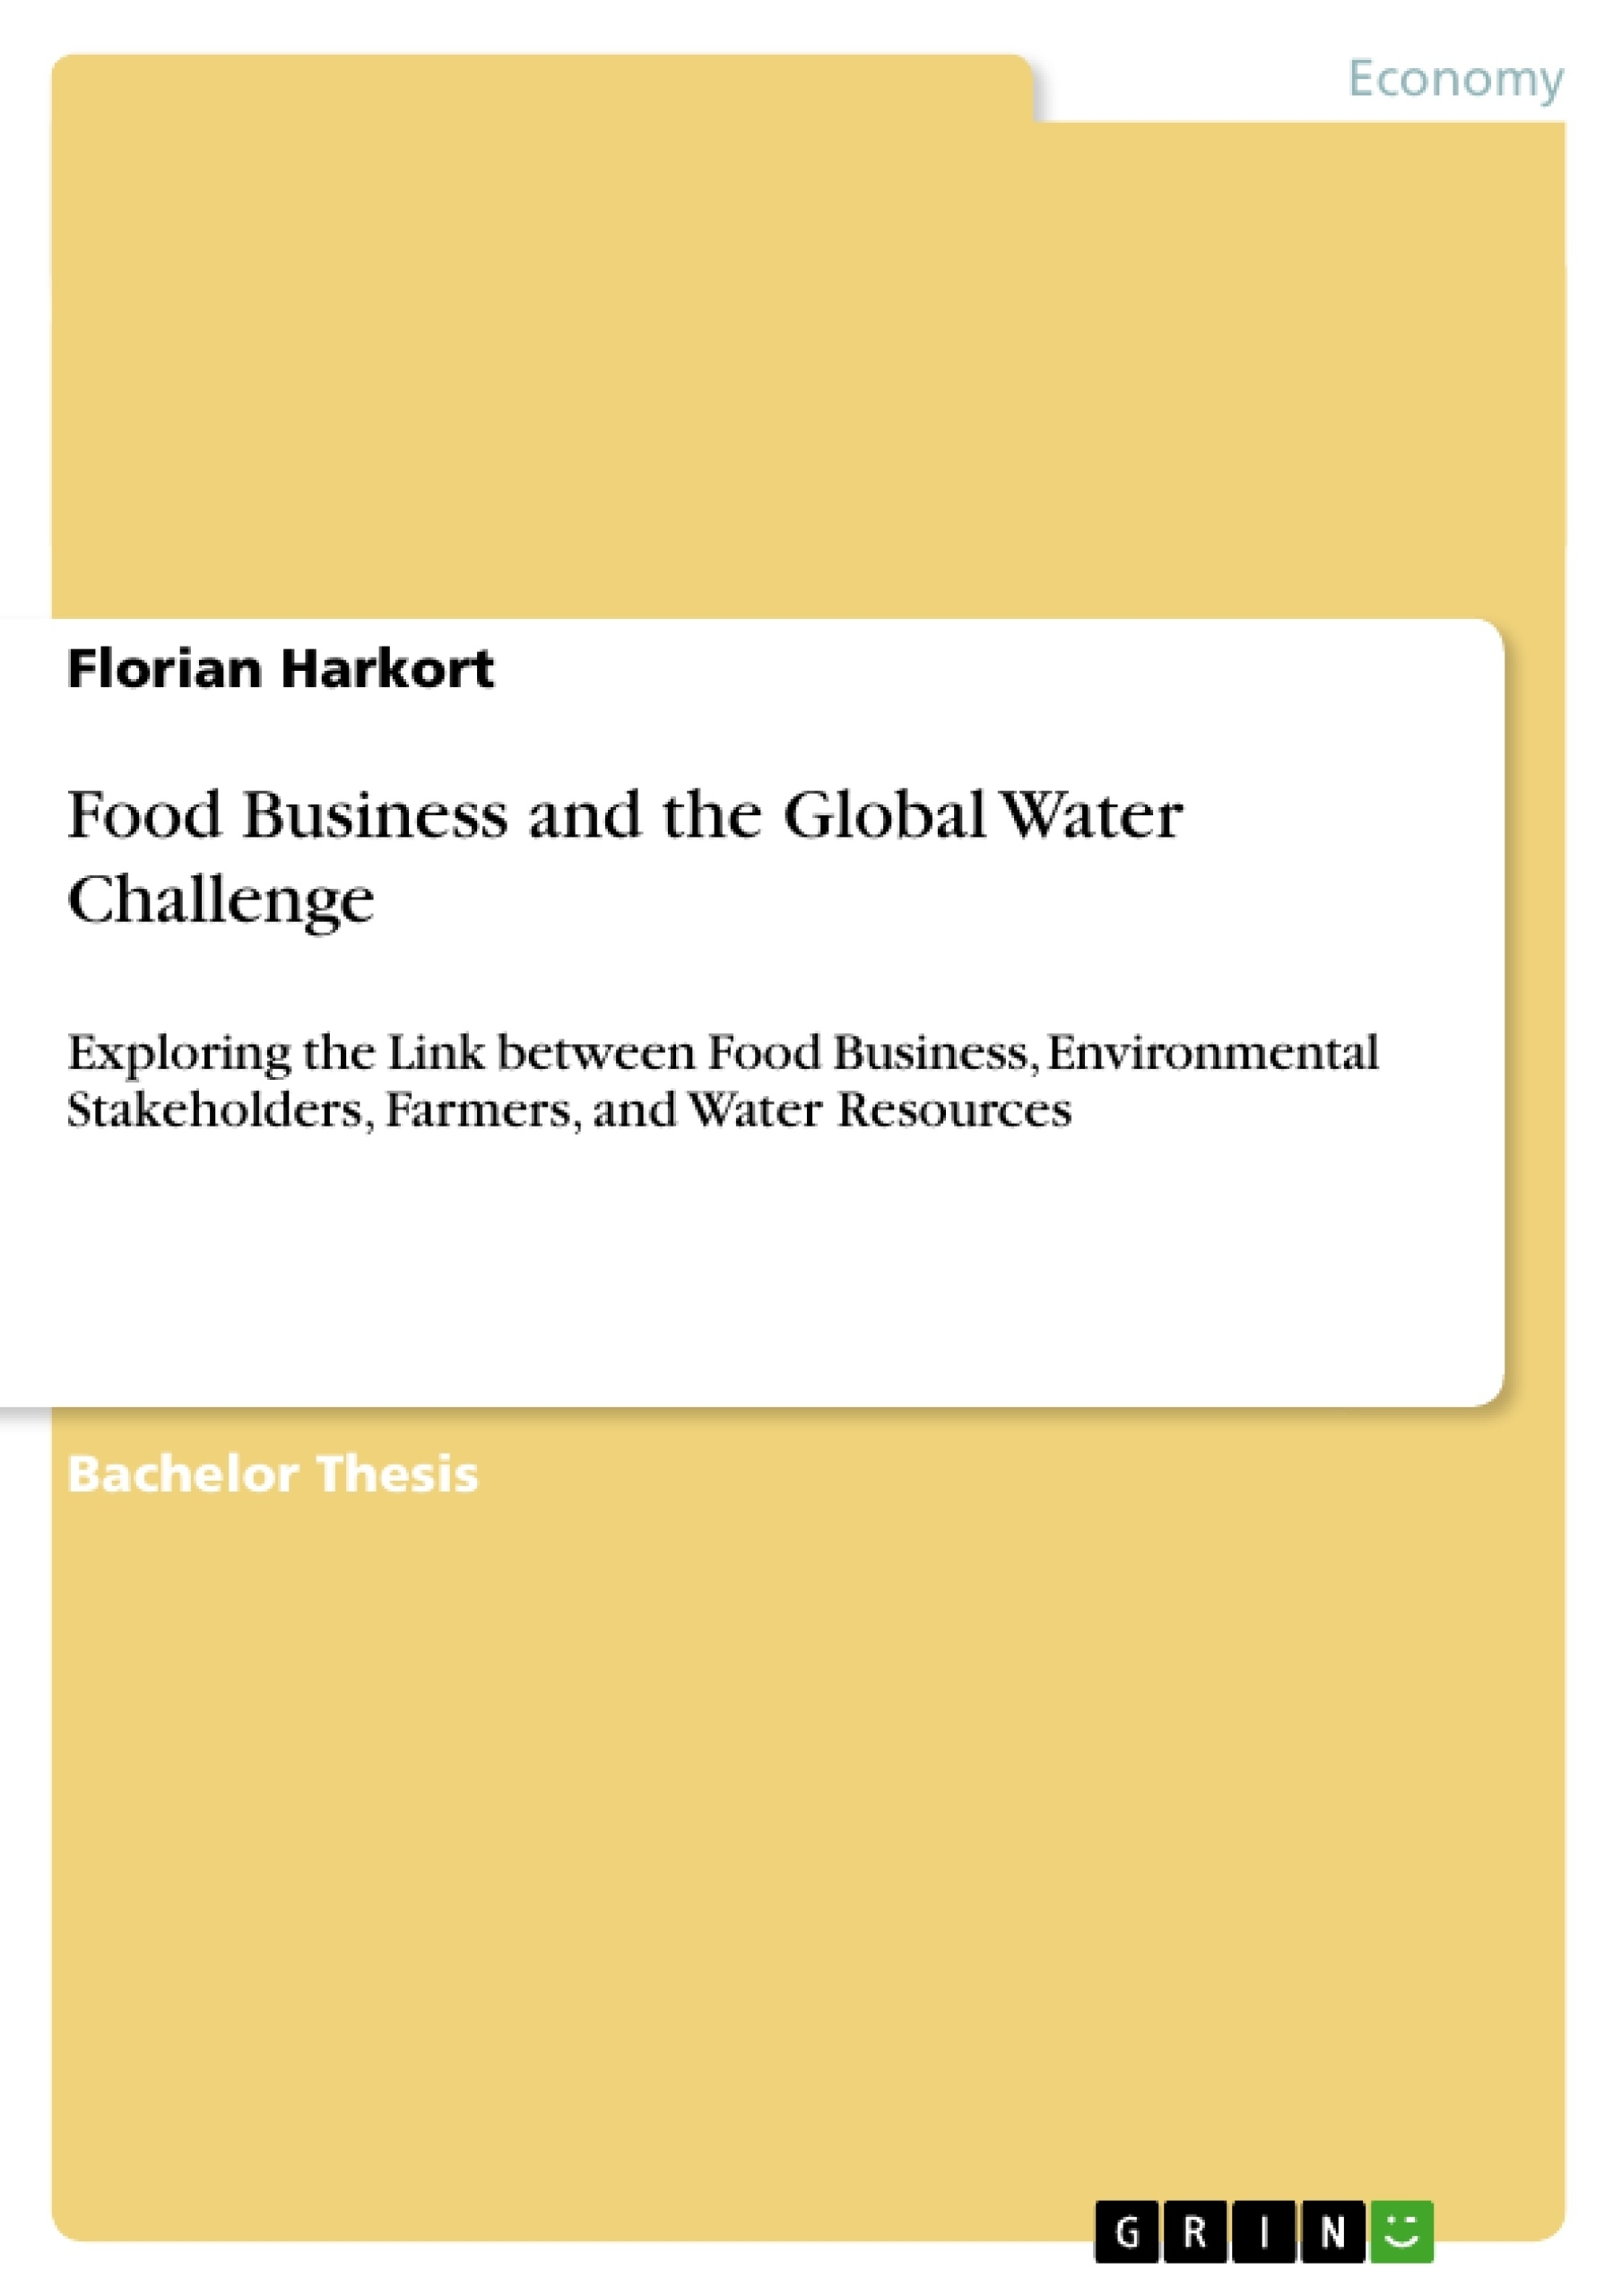 Title: Food Business and the Global Water Challenge